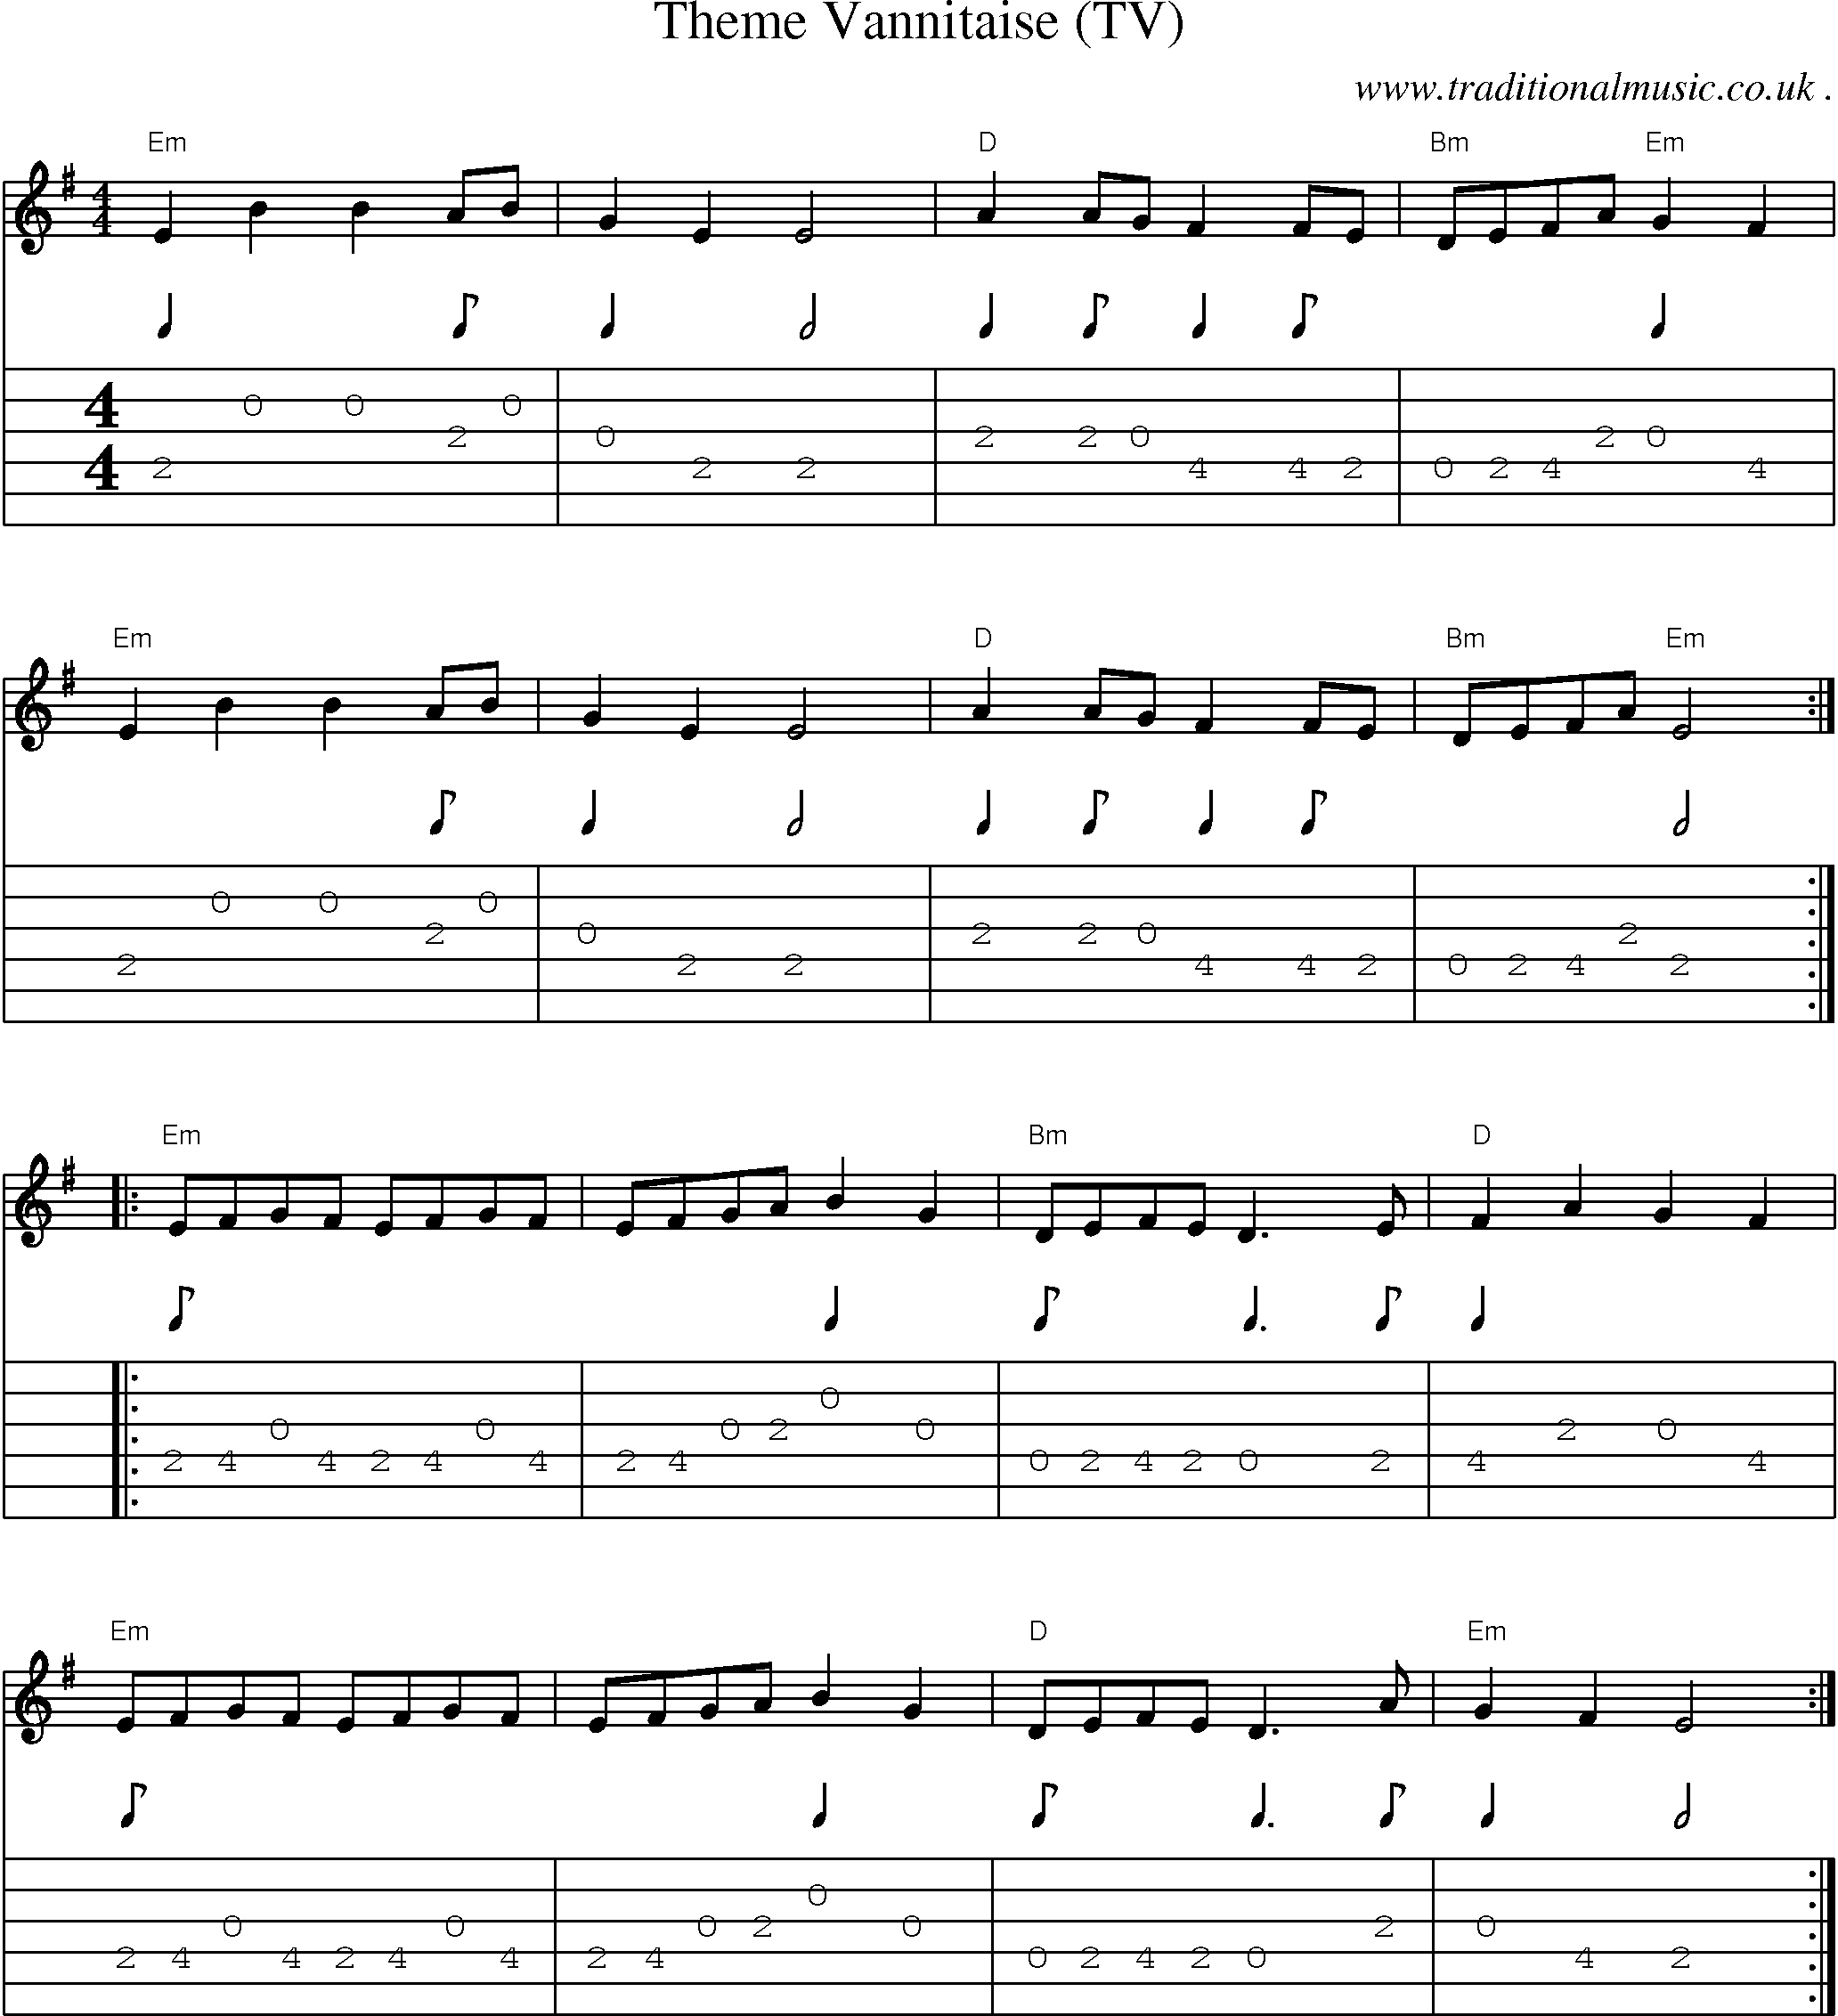 Common session tunes, Scores and Tabs for Guitar - Theme Vannitaise (TV)